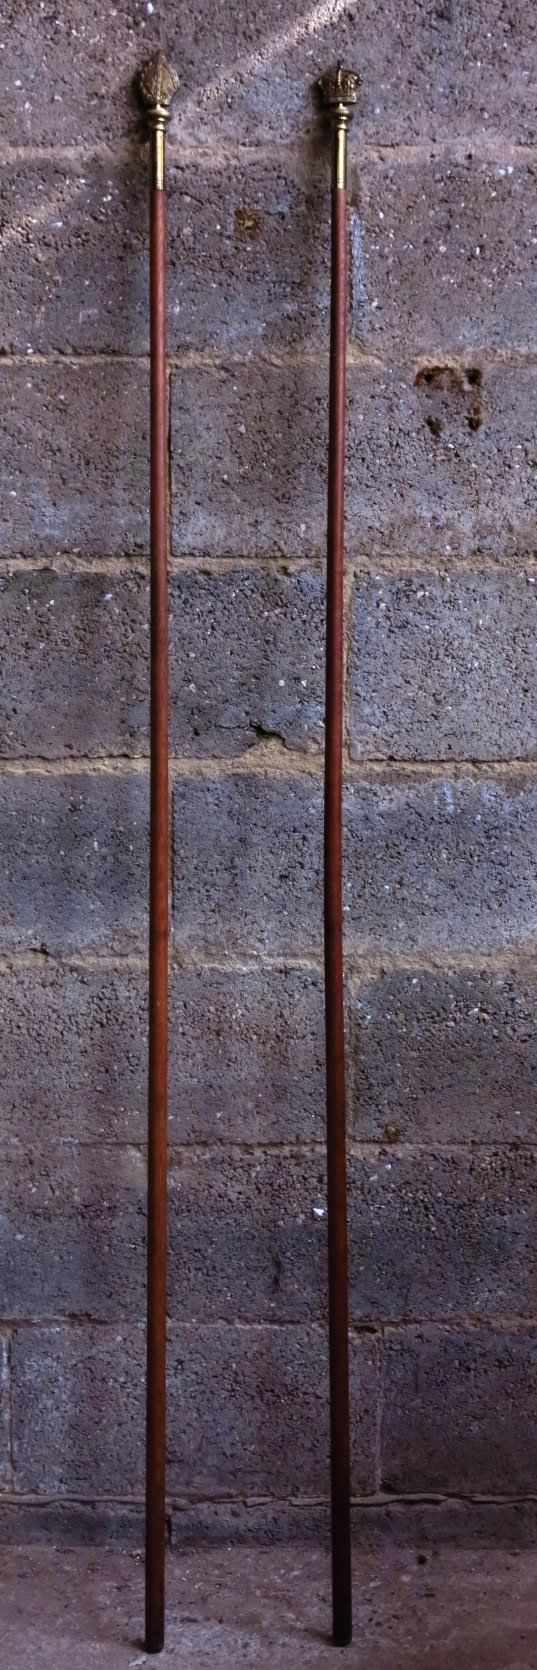 Pair of Heavy Quality Victorian Wardens Staves - Image 2 of 4